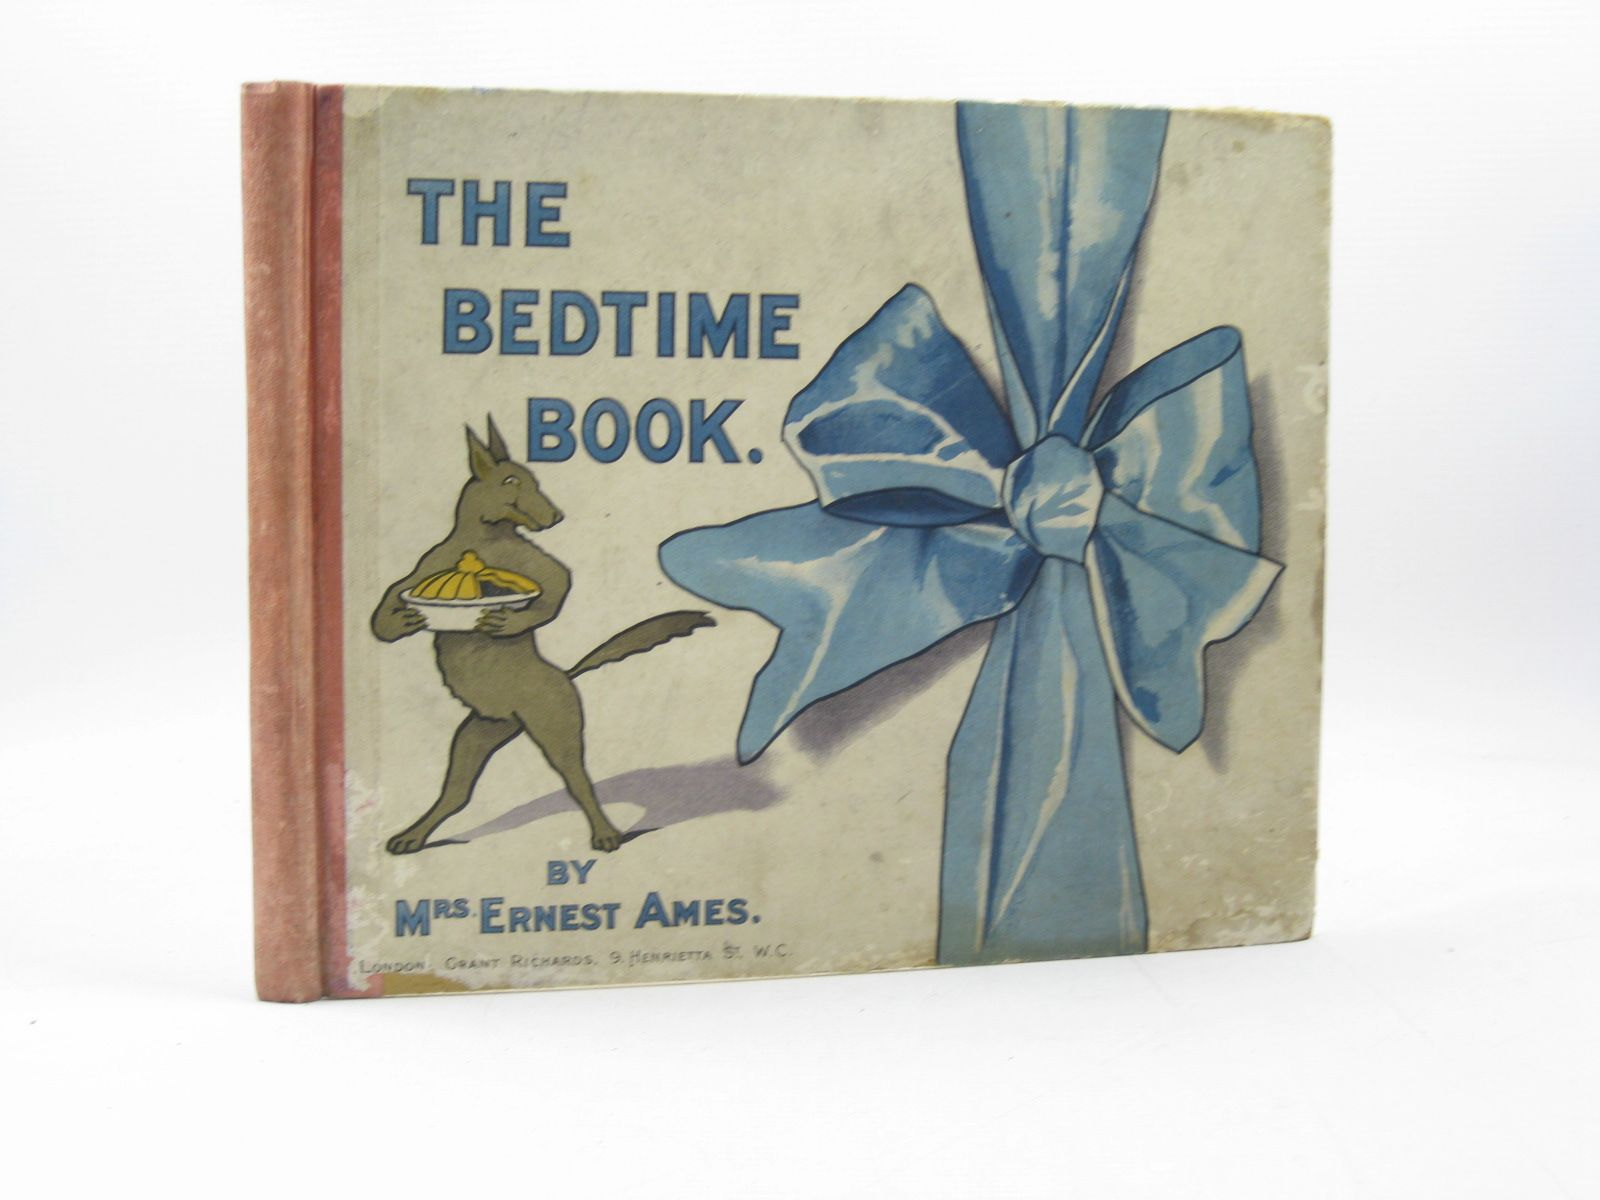 Photo of THE BEDTIME BOOK written by Ames, Mrs. Ernest illustrated by Ames, Mrs. Ernest published by Grant Richards (STOCK CODE: 1313582)  for sale by Stella & Rose's Books